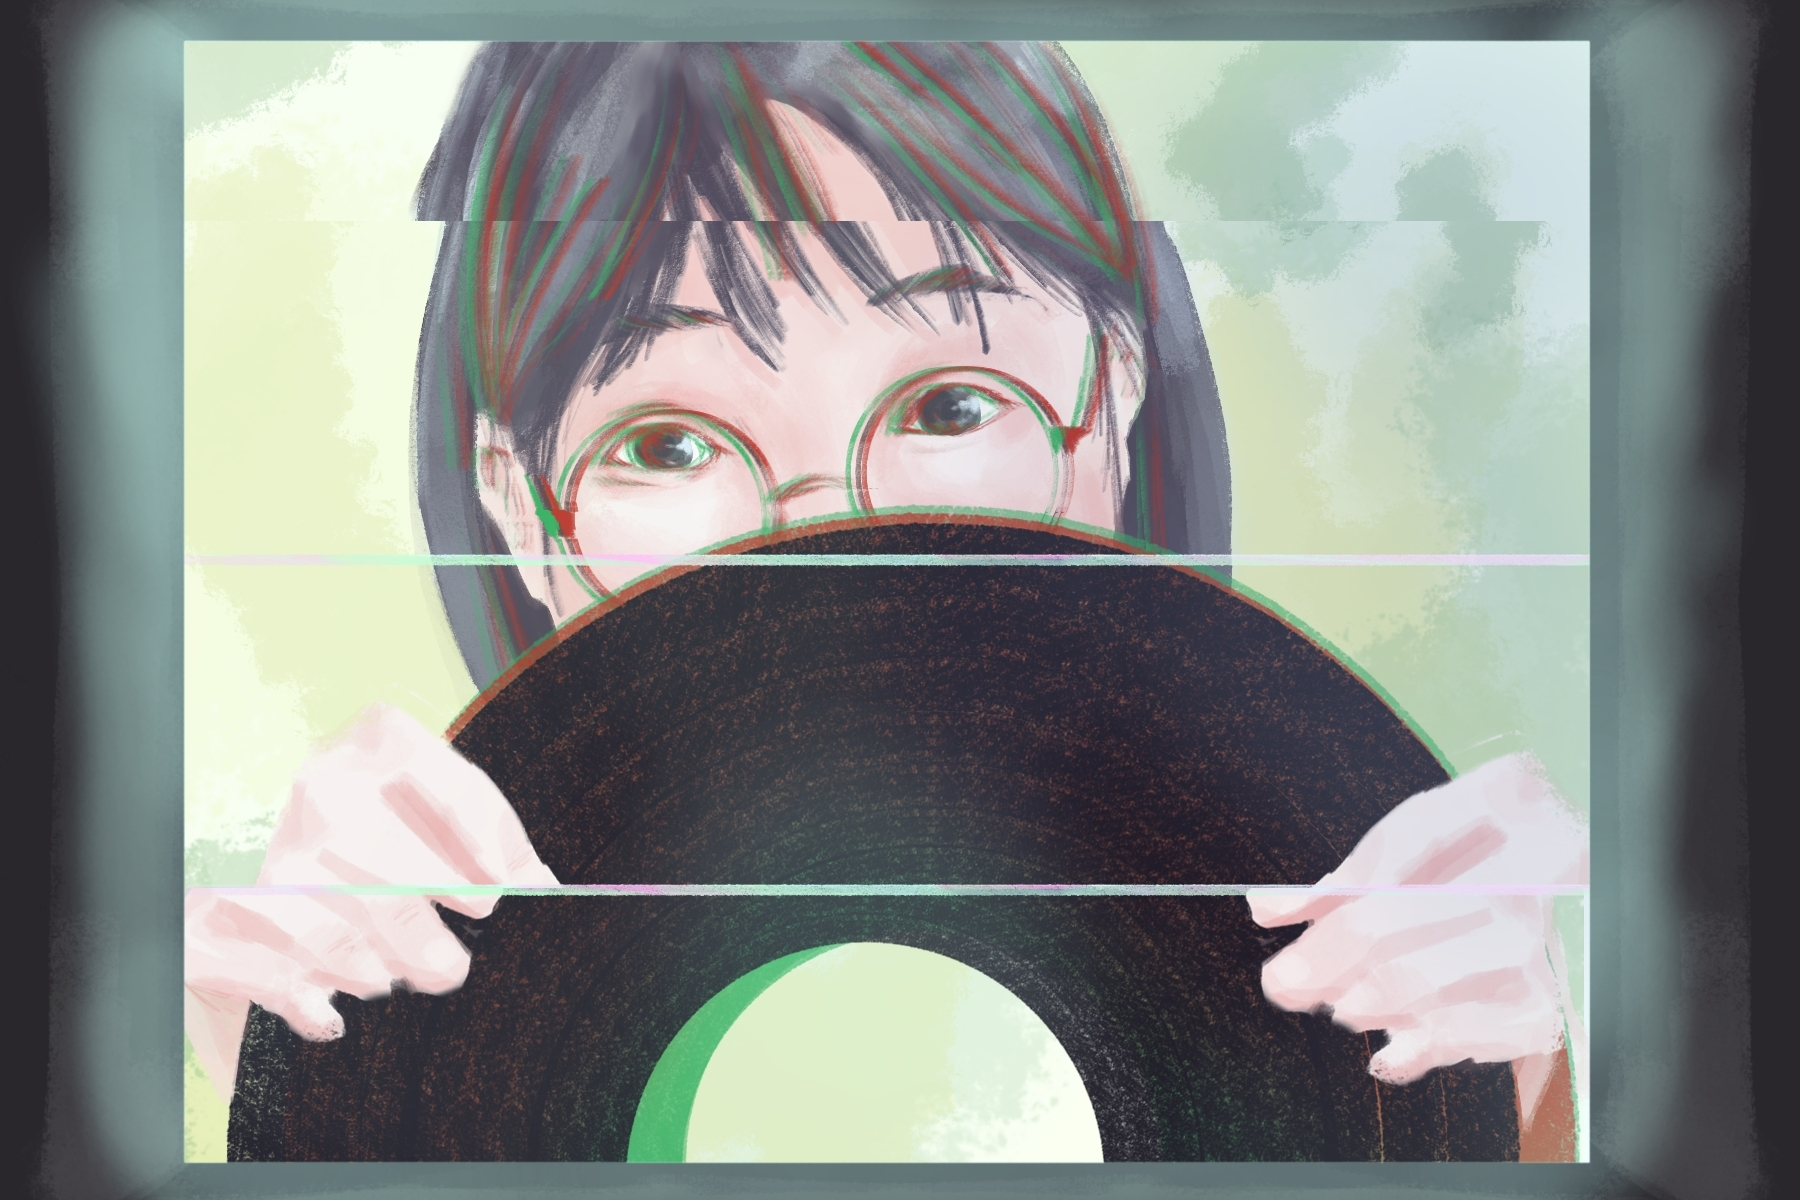 Drawing of Yaeji holding a record in a review of WHAT WE DREW.